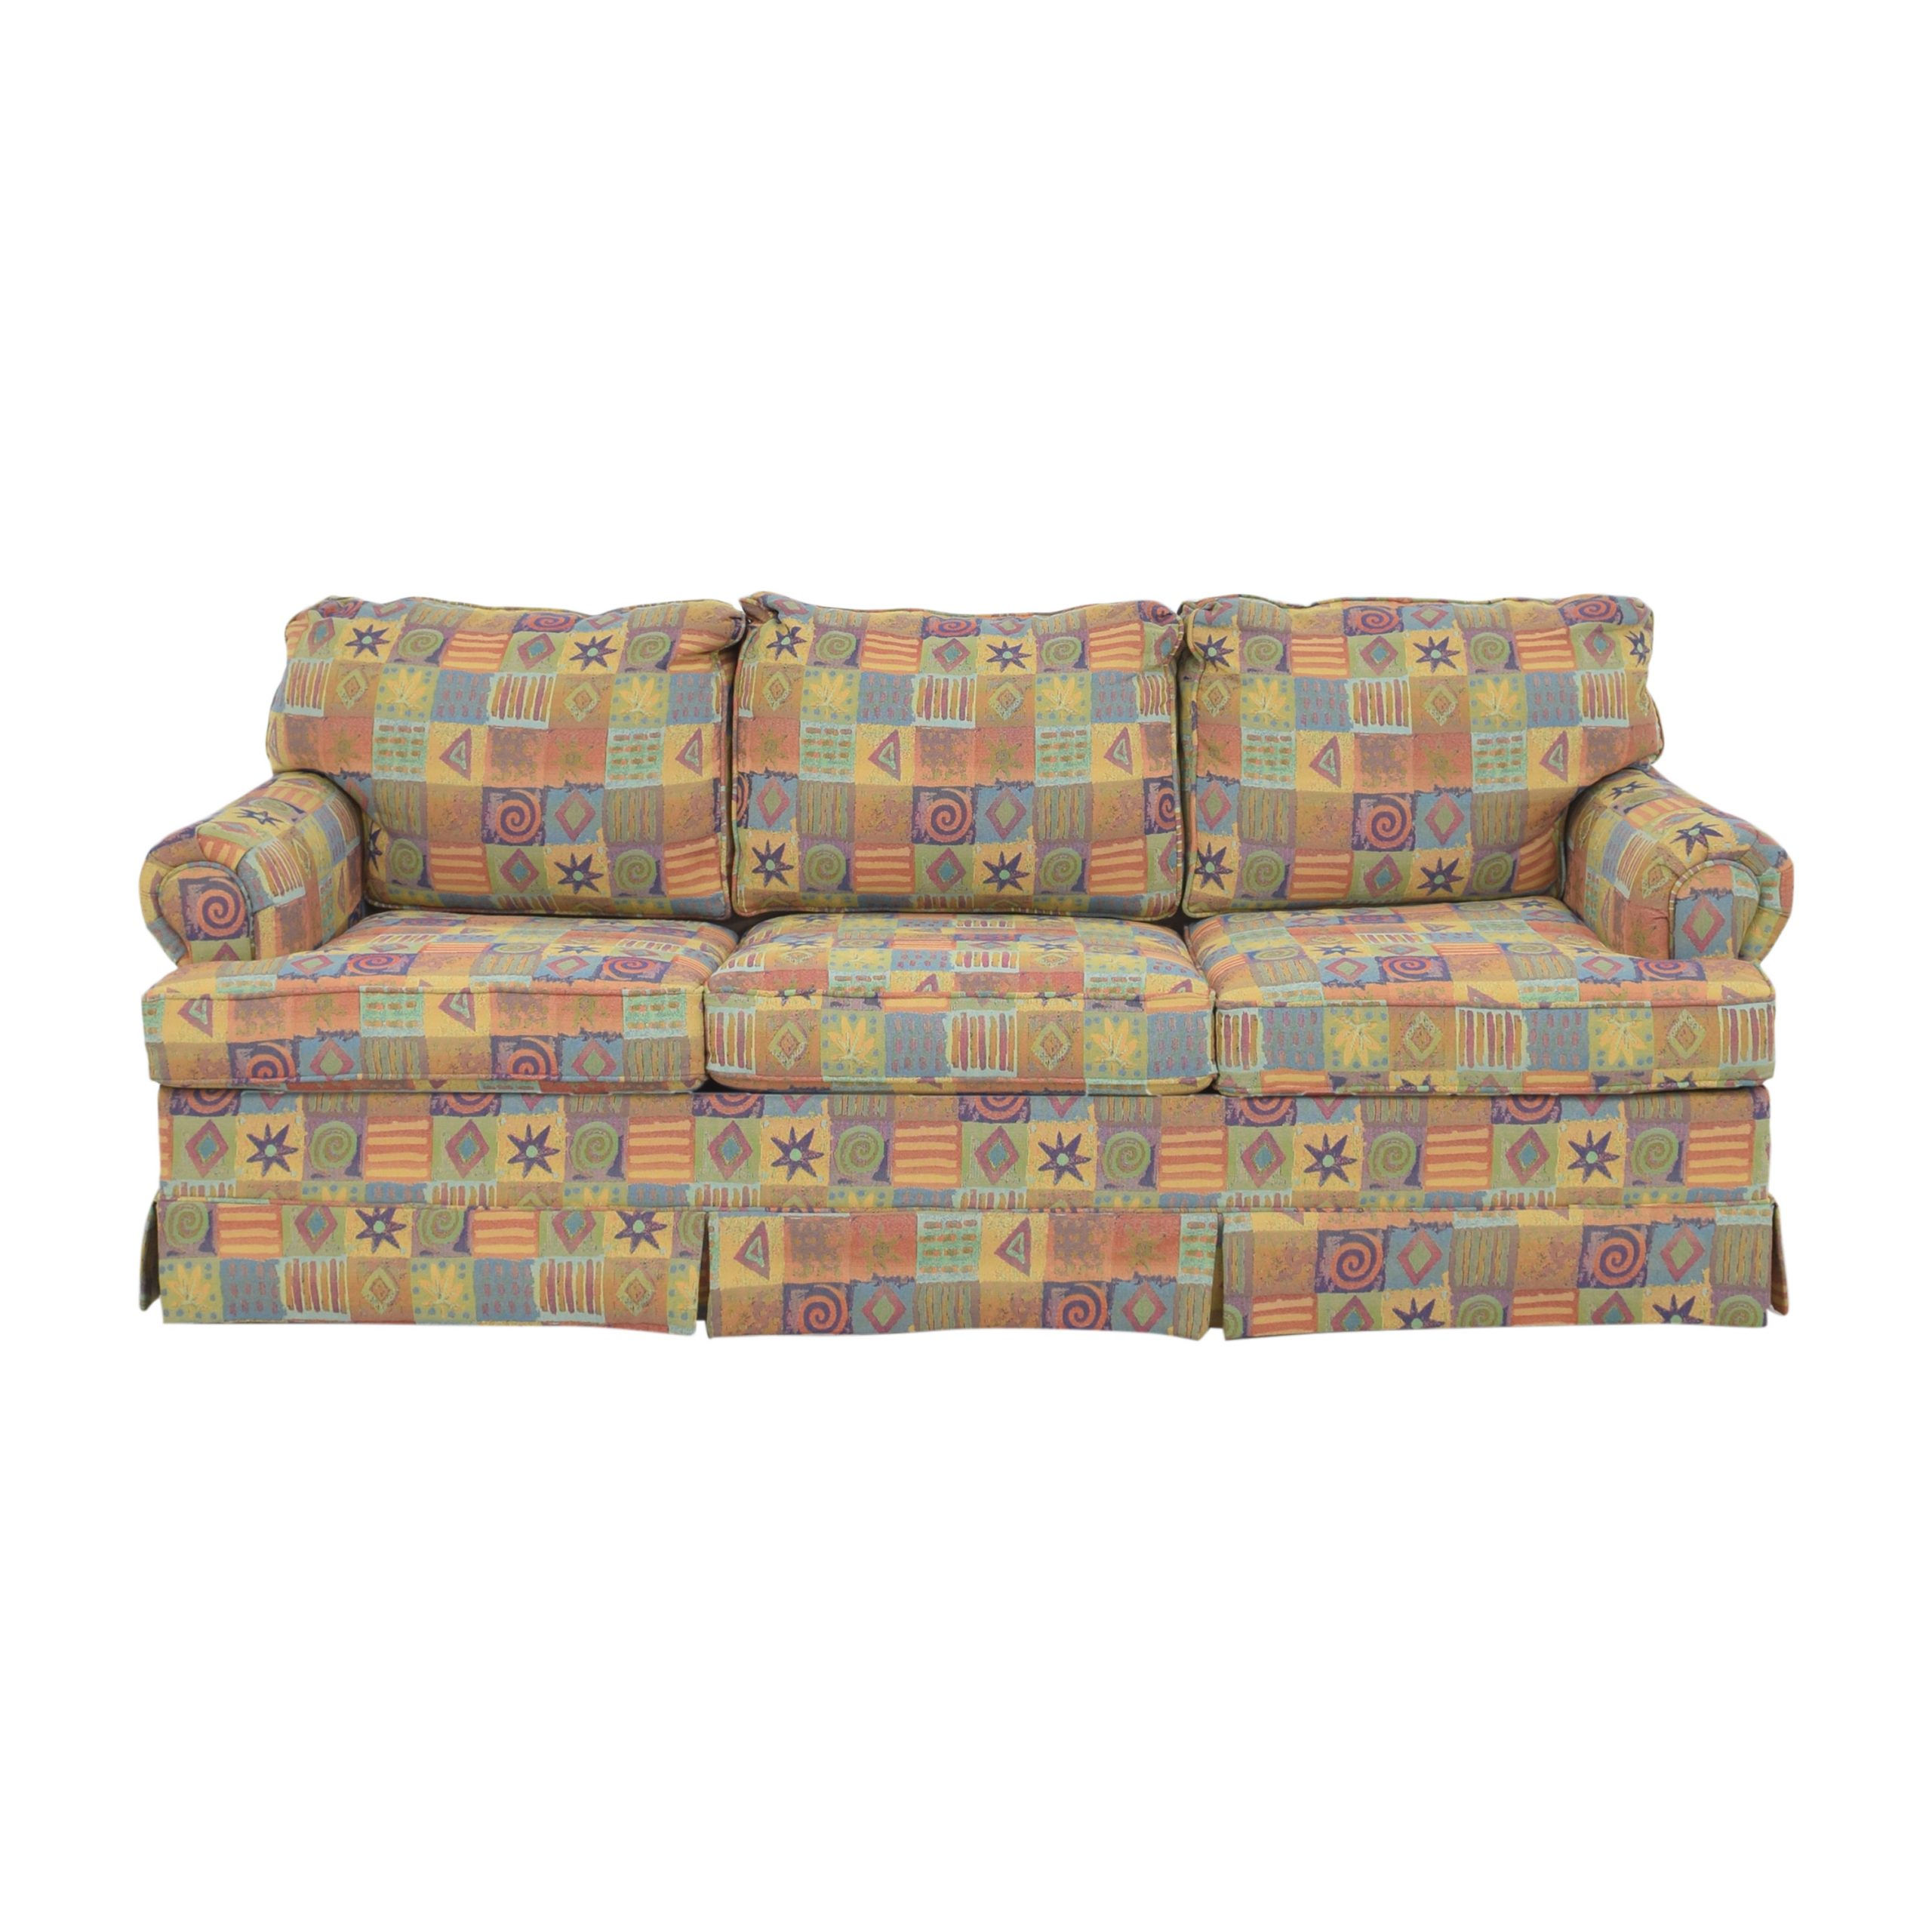 [%77% Off – Multicolor Patterned Sleeper Sofa / Sofas Pertaining To Well Liked Camila Poly Blend Sectional Sofas Off White|Camila Poly Blend Sectional Sofas Off White Within Most Up To Date 77% Off – Multicolor Patterned Sleeper Sofa / Sofas|Popular Camila Poly Blend Sectional Sofas Off White For 77% Off – Multicolor Patterned Sleeper Sofa / Sofas|Favorite 77% Off – Multicolor Patterned Sleeper Sofa / Sofas With Regard To Camila Poly Blend Sectional Sofas Off White%] (View 10 of 25)